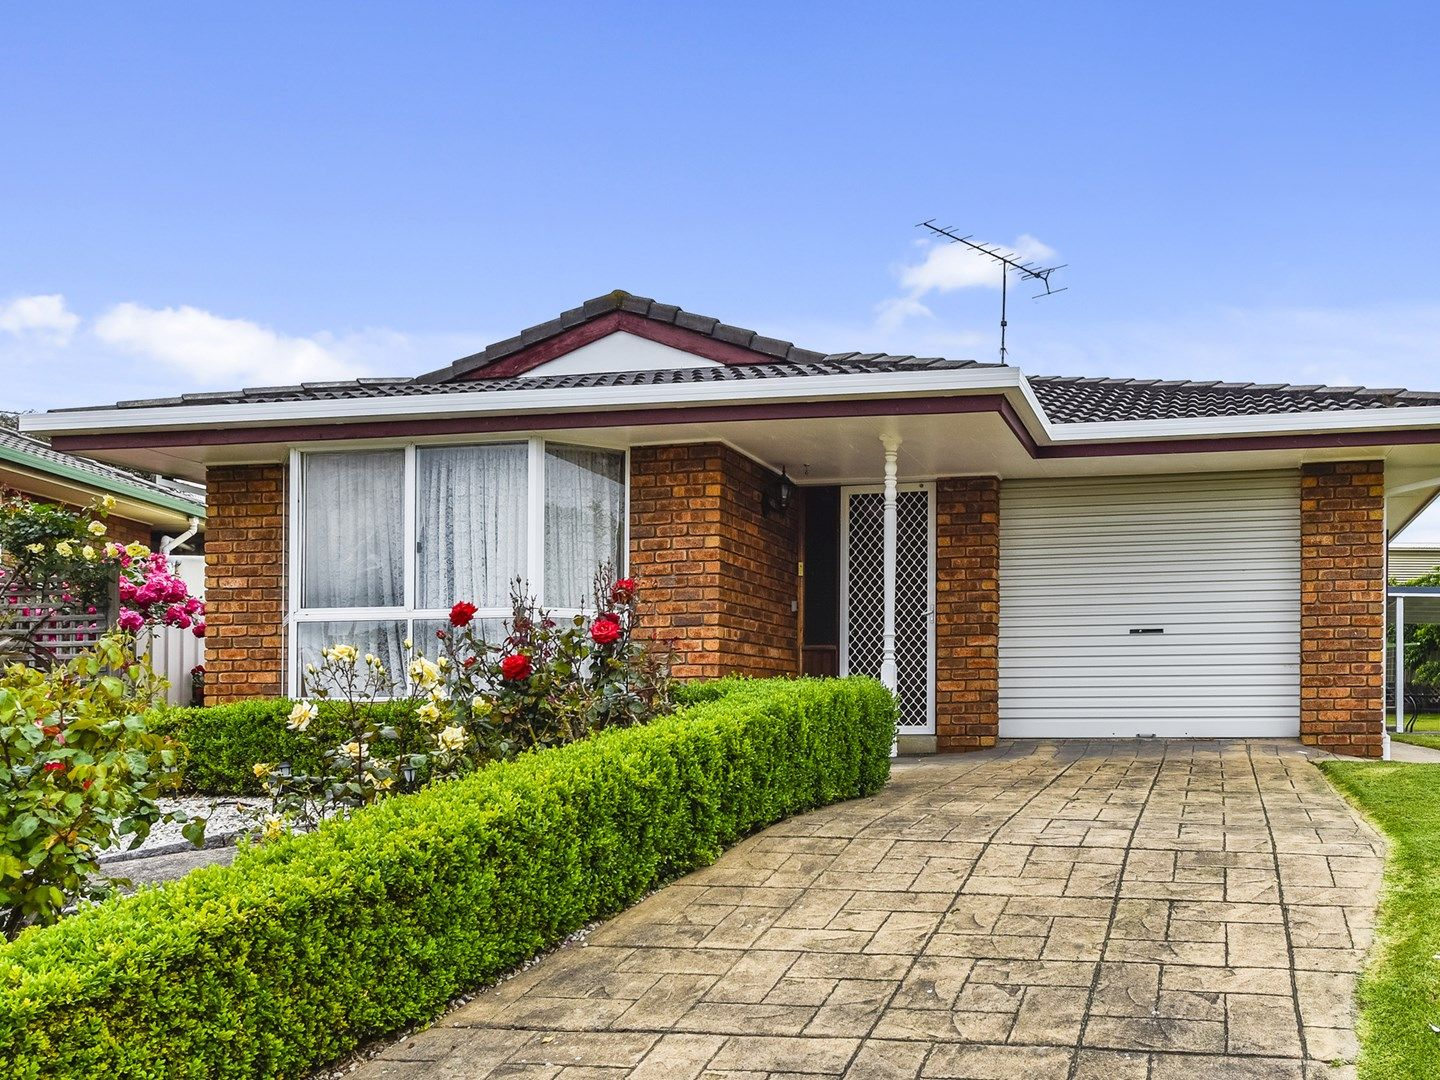 13 Shaughnessy Court, Mount Gambier SA 5290, Image 0